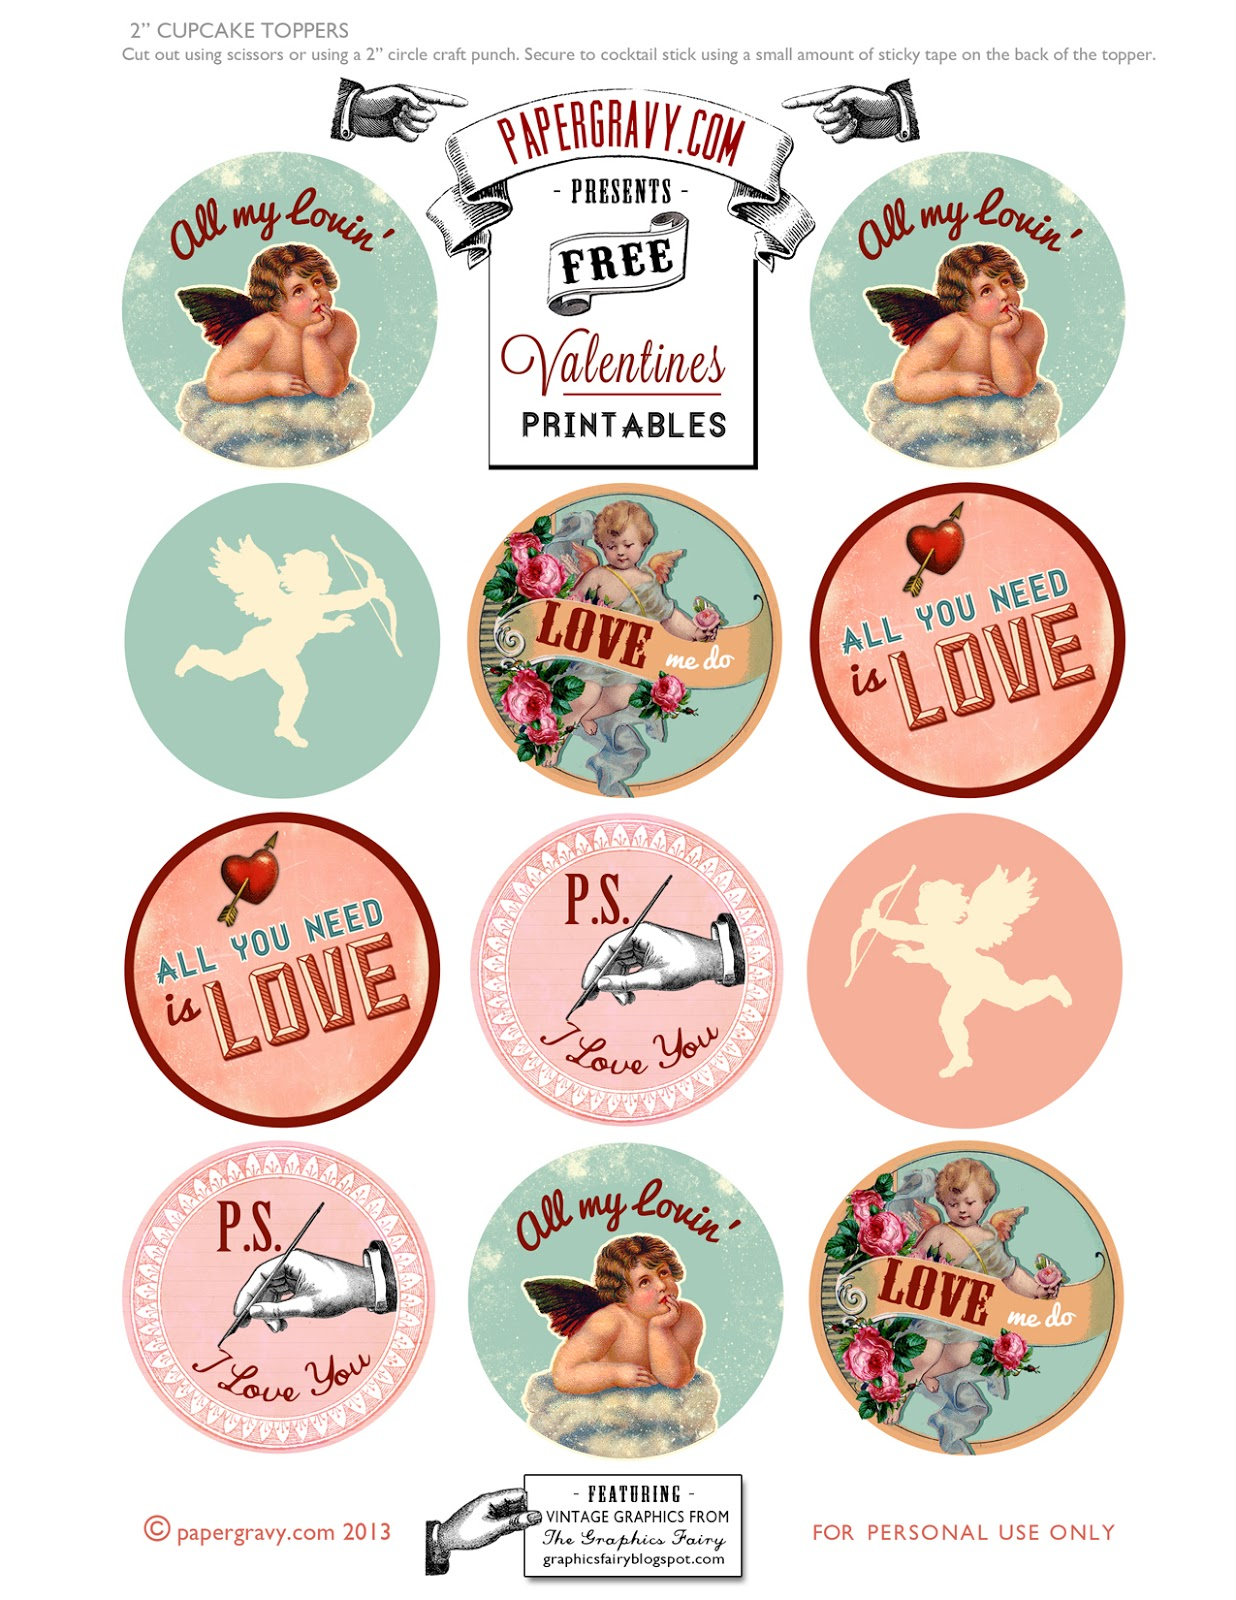 Valentine's Cupcake Toppers Printables